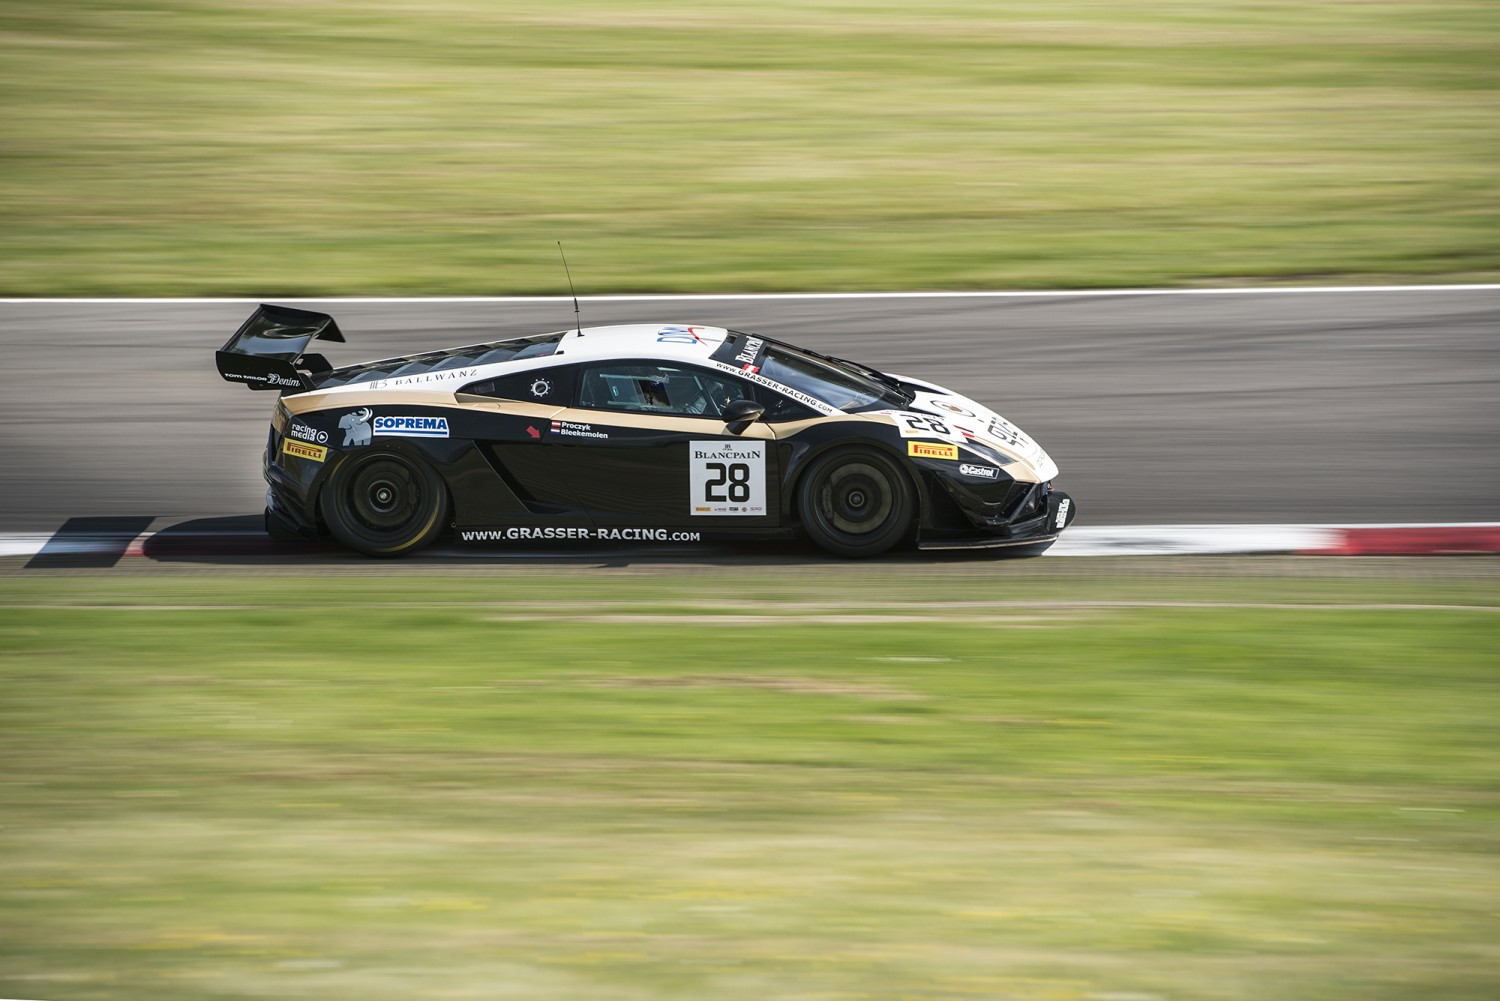 Clean sweep for Grasser Racing Team Lamborghini at Brands Hatch